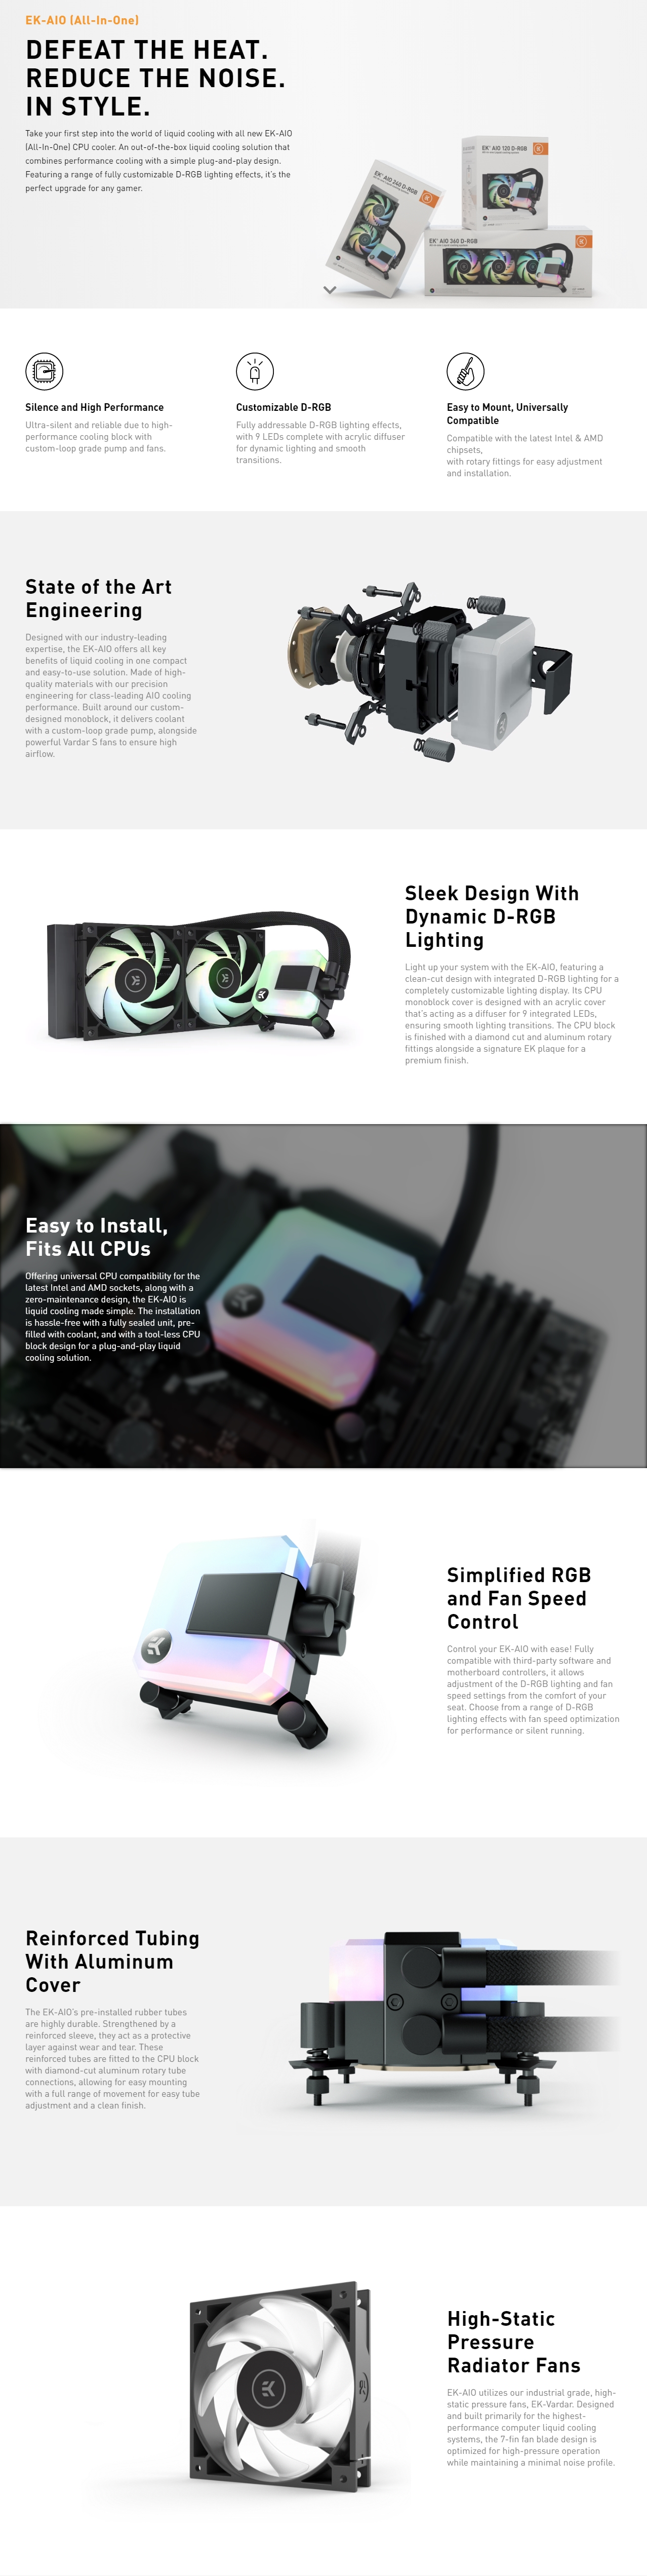 A large marketing image providing additional information about the product EK AIO 360 D-RGB AIO Liquid CPU Cooler - Additional alt info not provided